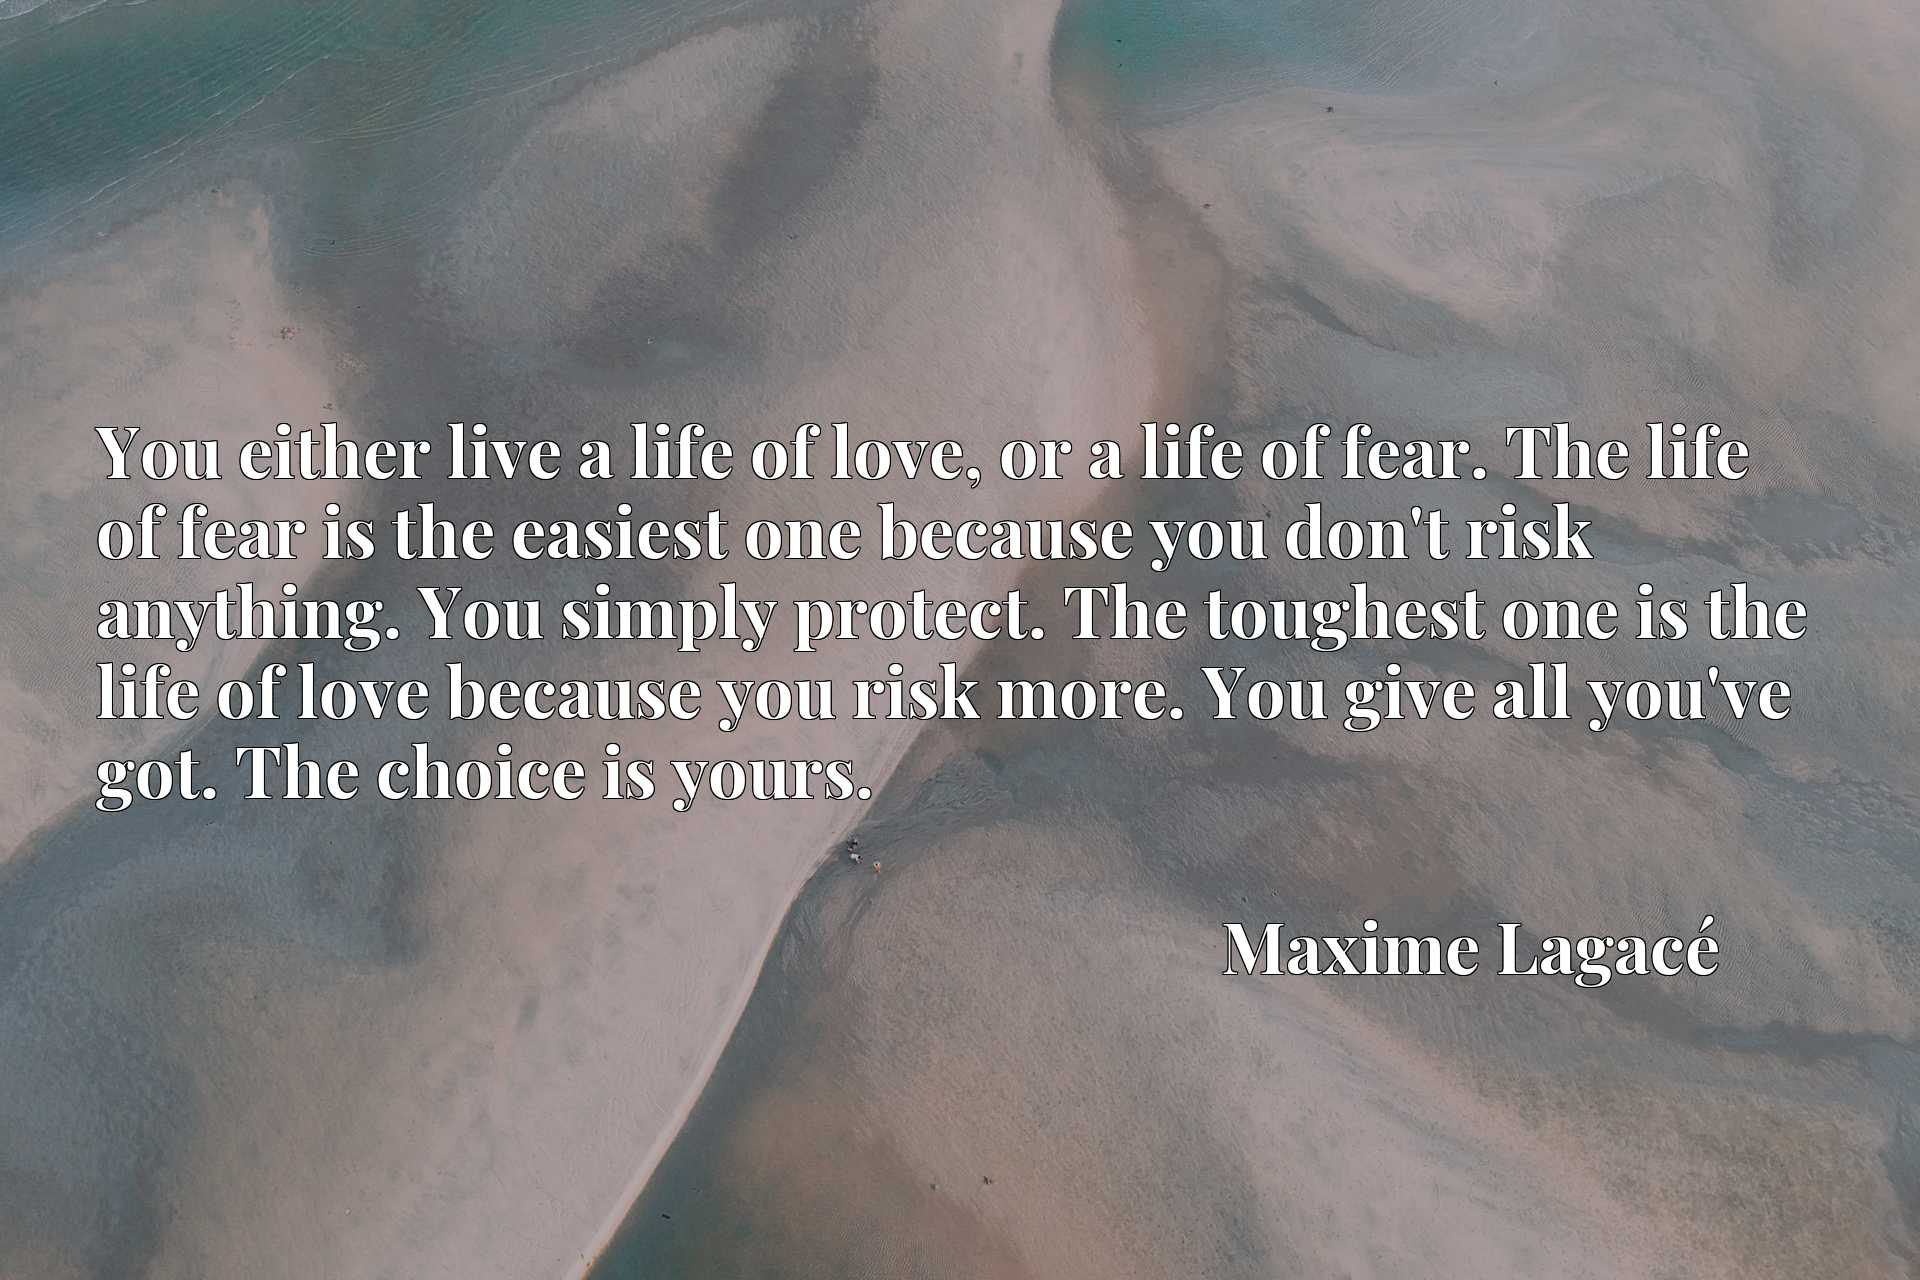 You either live a life of love, or a life of fear. The life of fear is the easiest one because you don't risk anything. You simply protect. The toughest one is the life of love because you risk more. You give all you've got. The choice is yours.